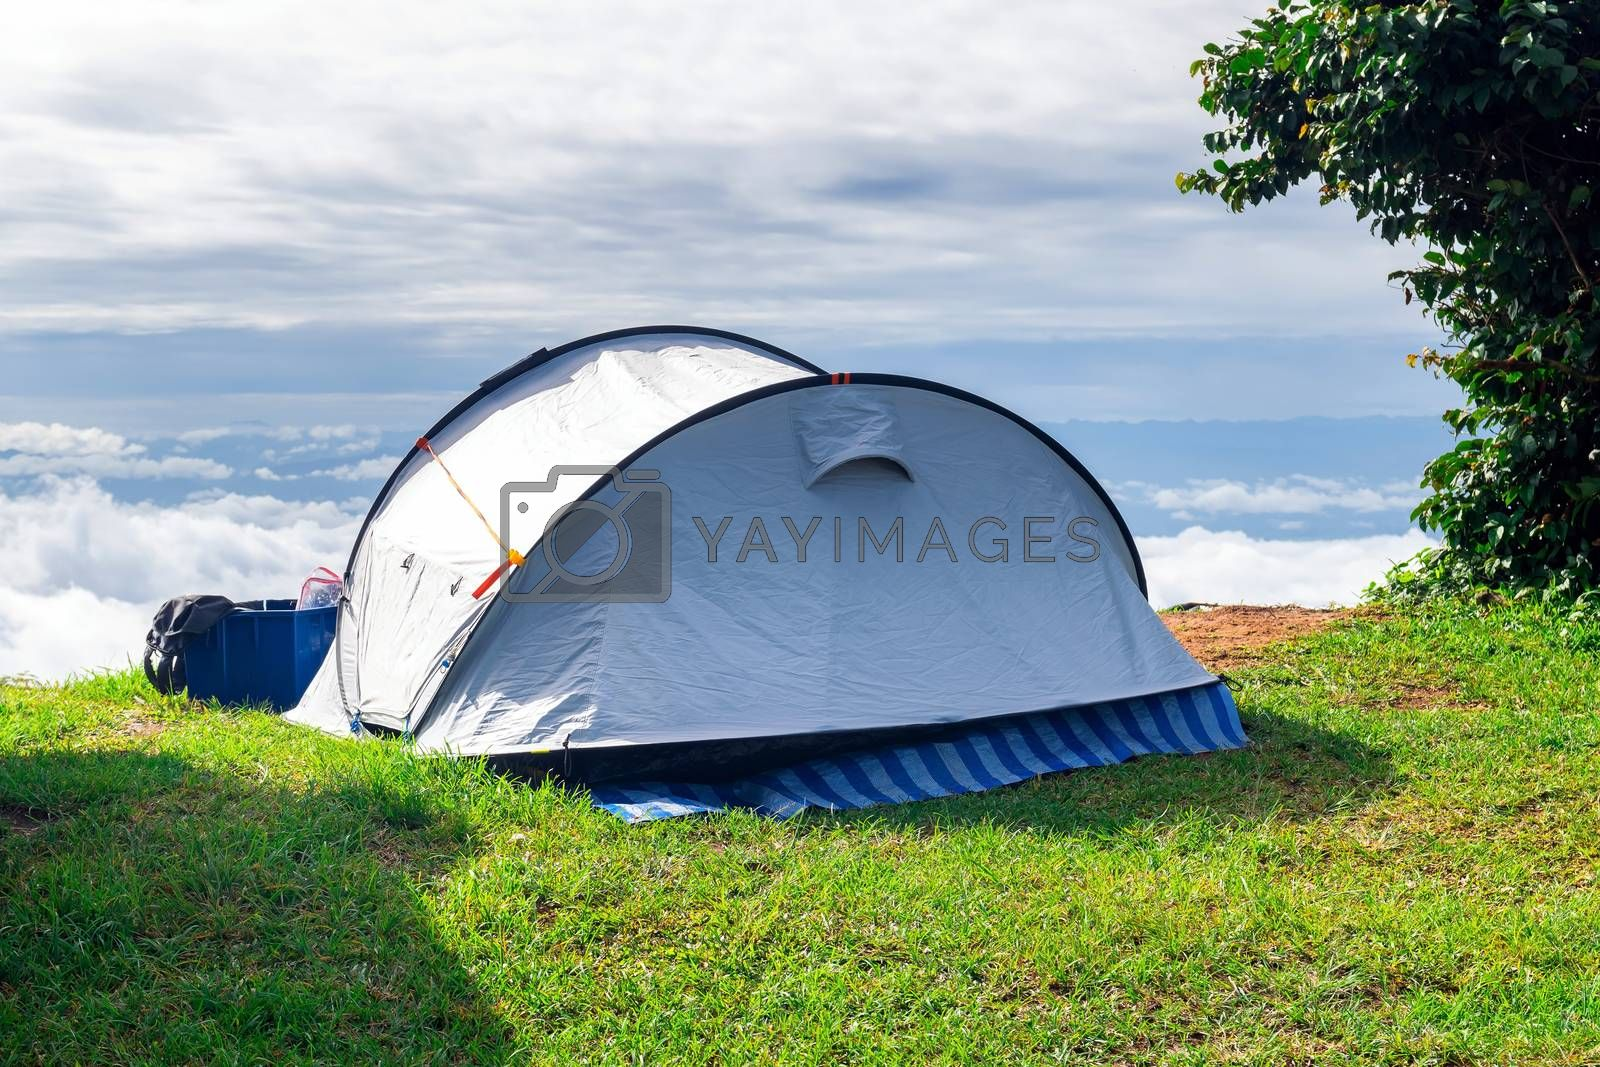 Closeup a camping tent that is set up on a grass field at the highest point of a high mountain with a backdrop of sky and clouds.